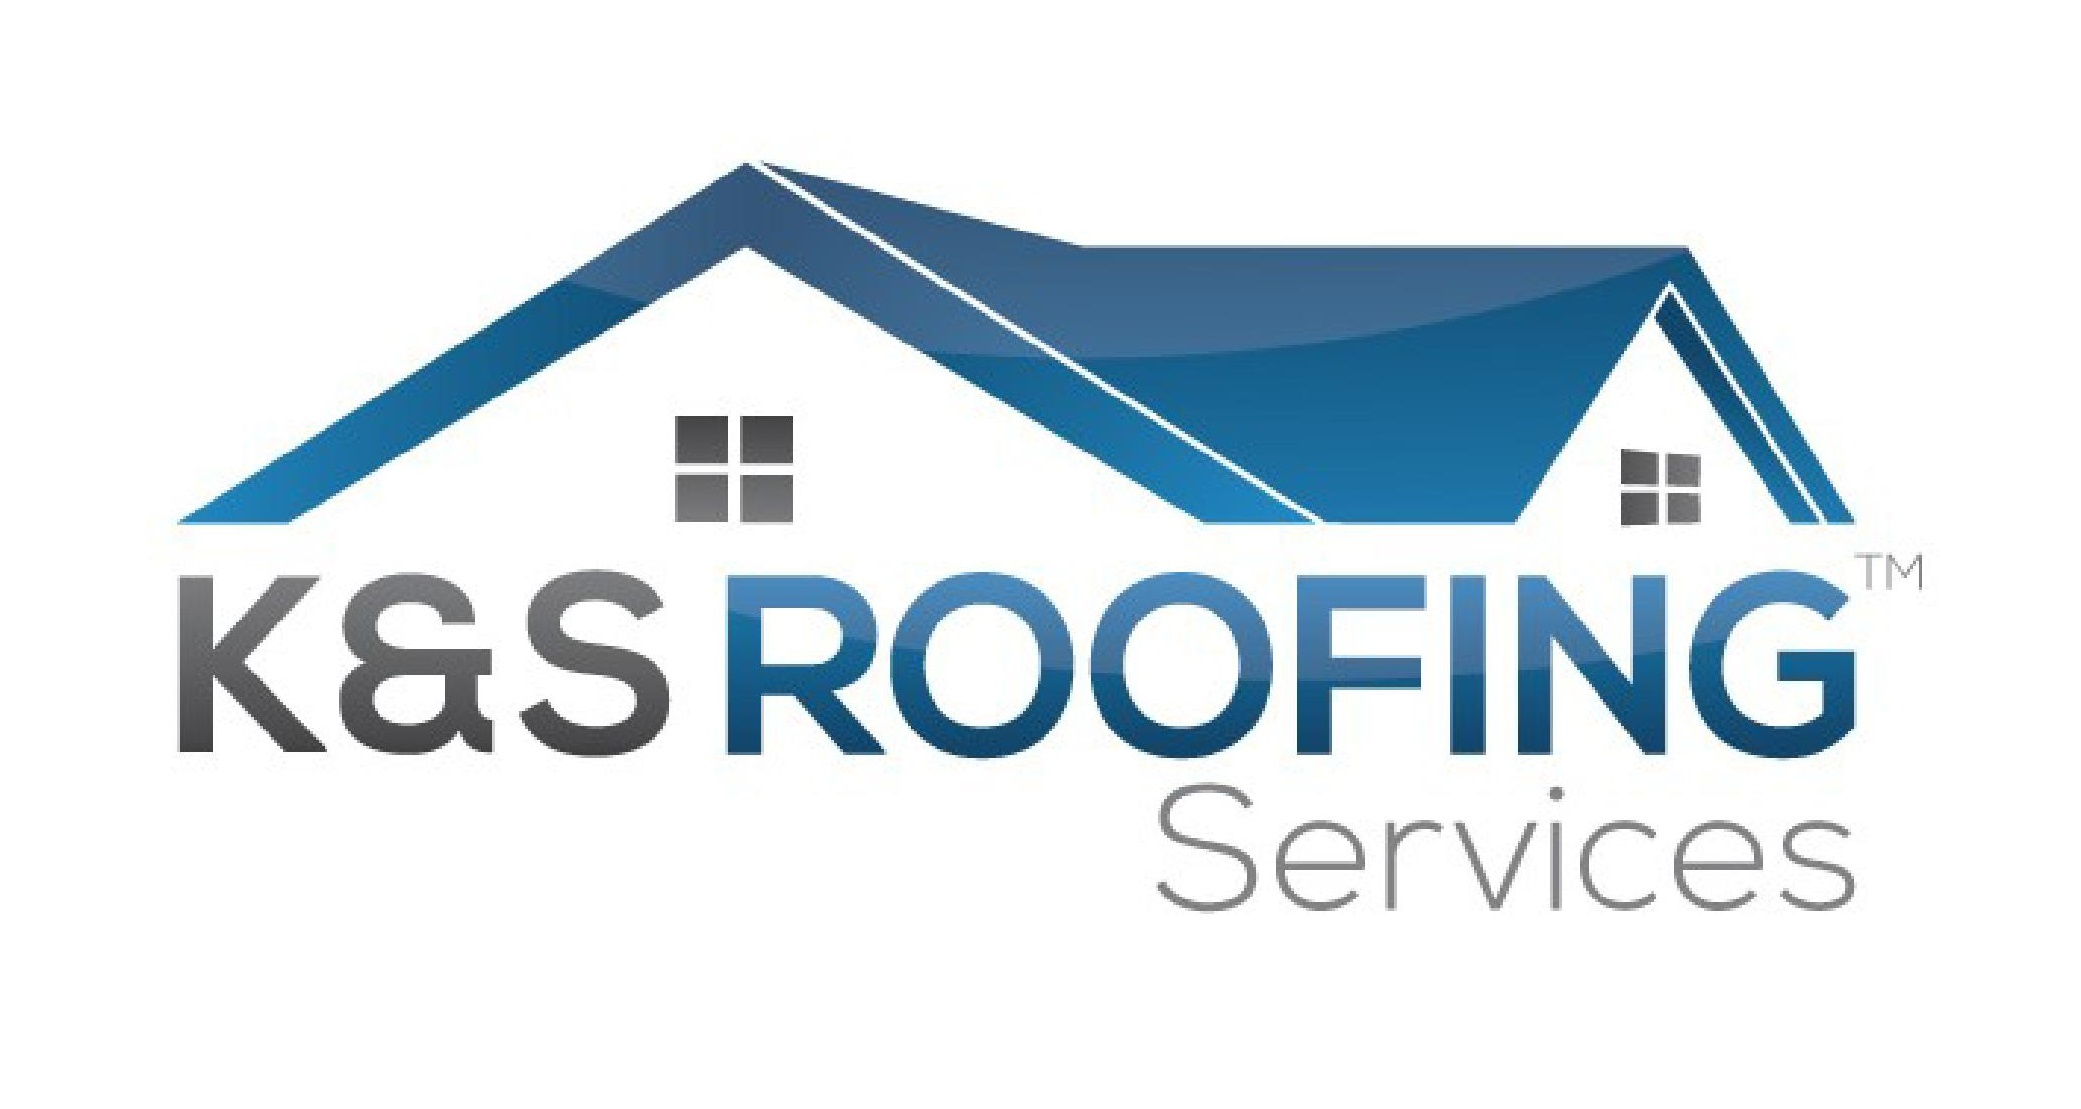 K&S ROOFING